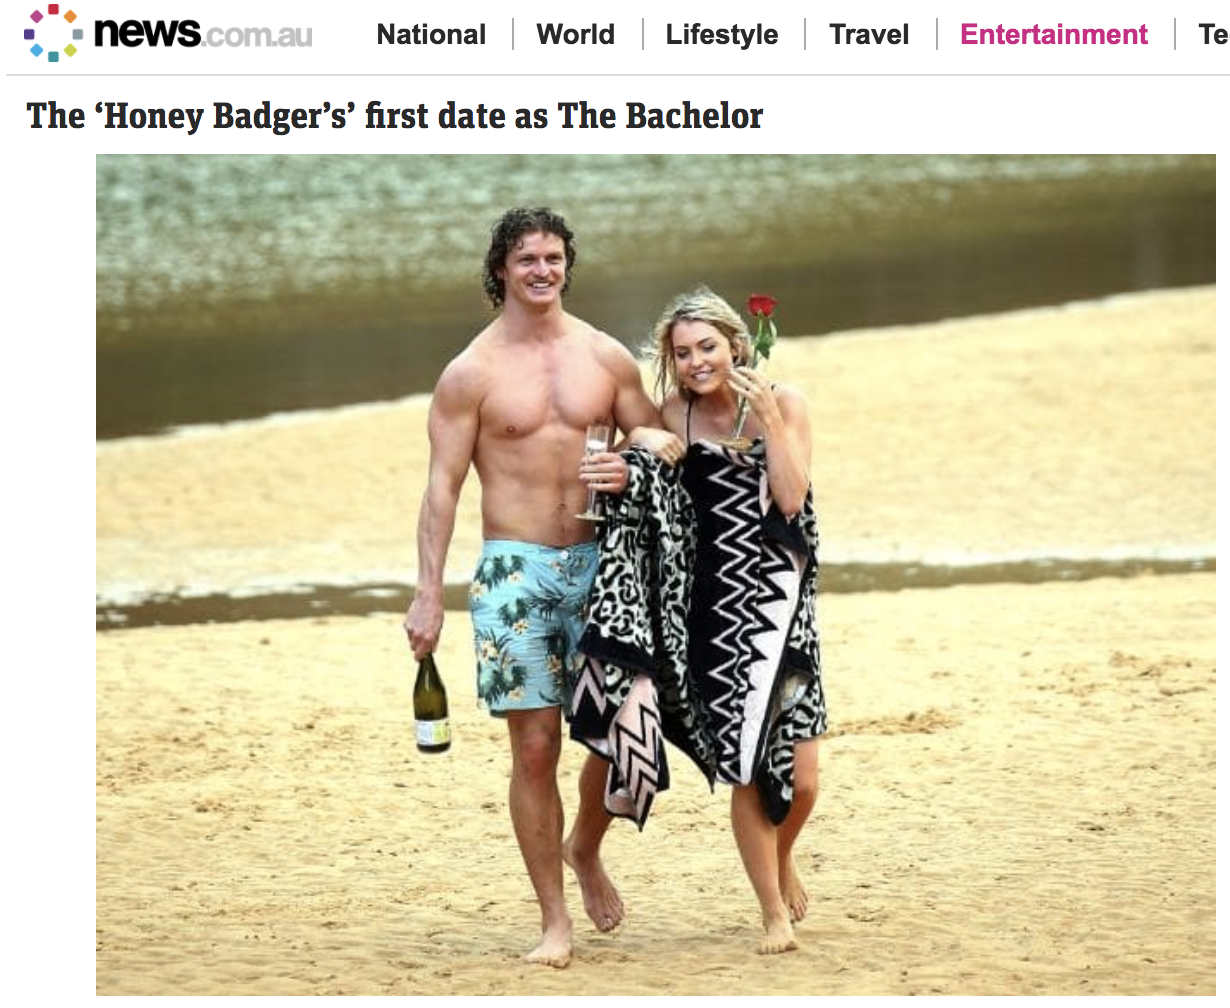 The Bachelor paparrazi photo (news.com.au) [4]